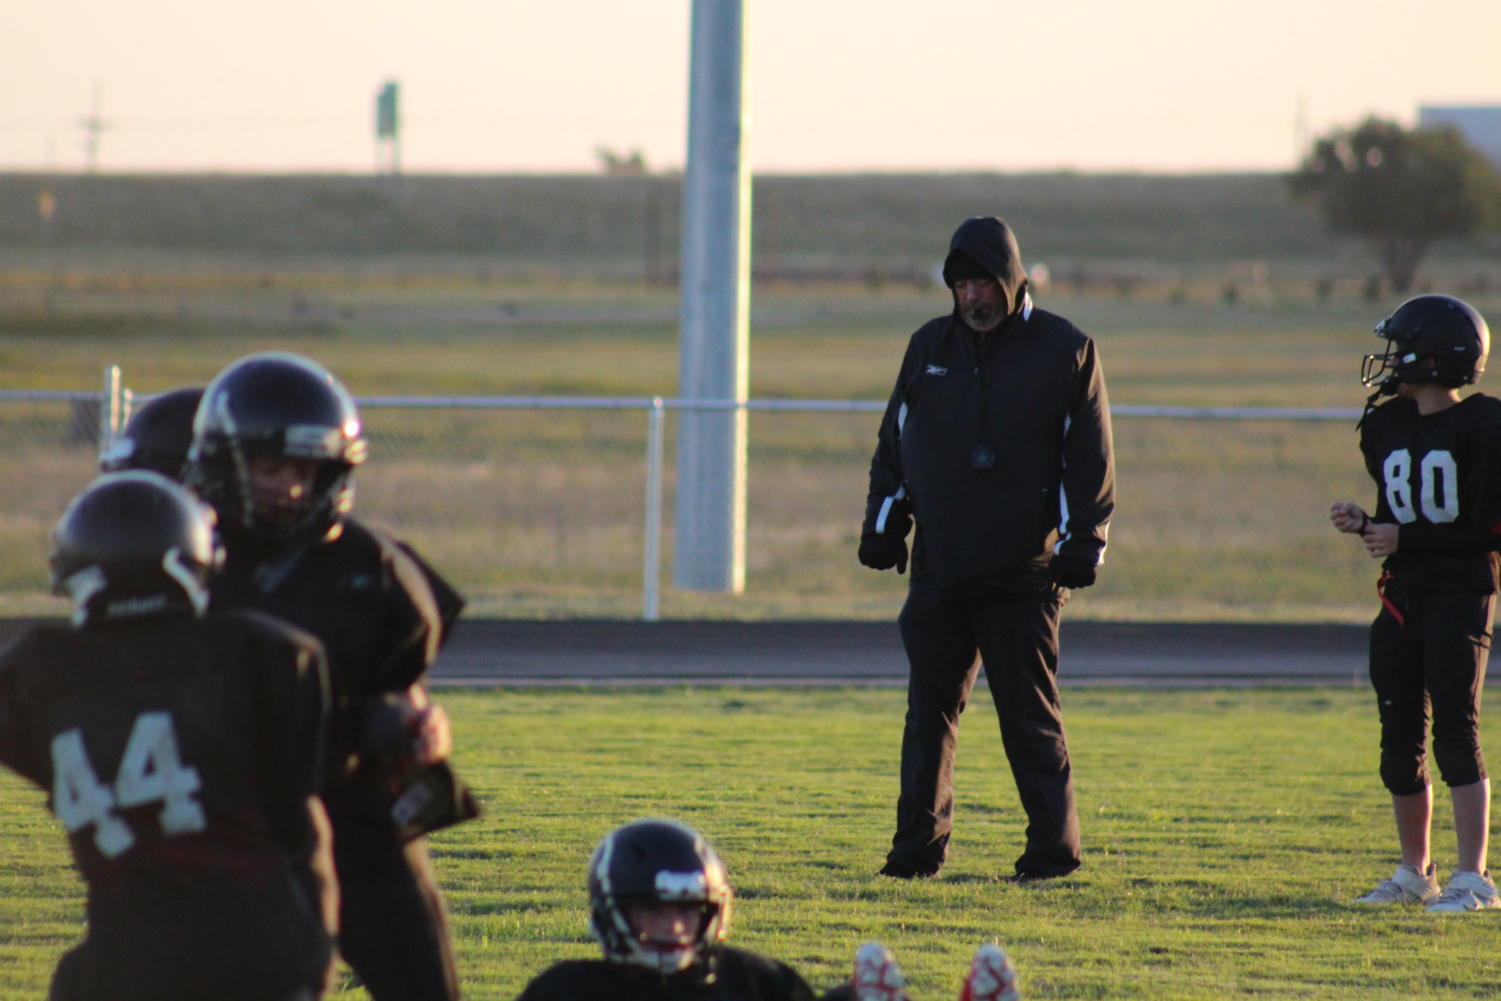 Looking like Darth Vader, Coach Peet stays warm for outdoor training,